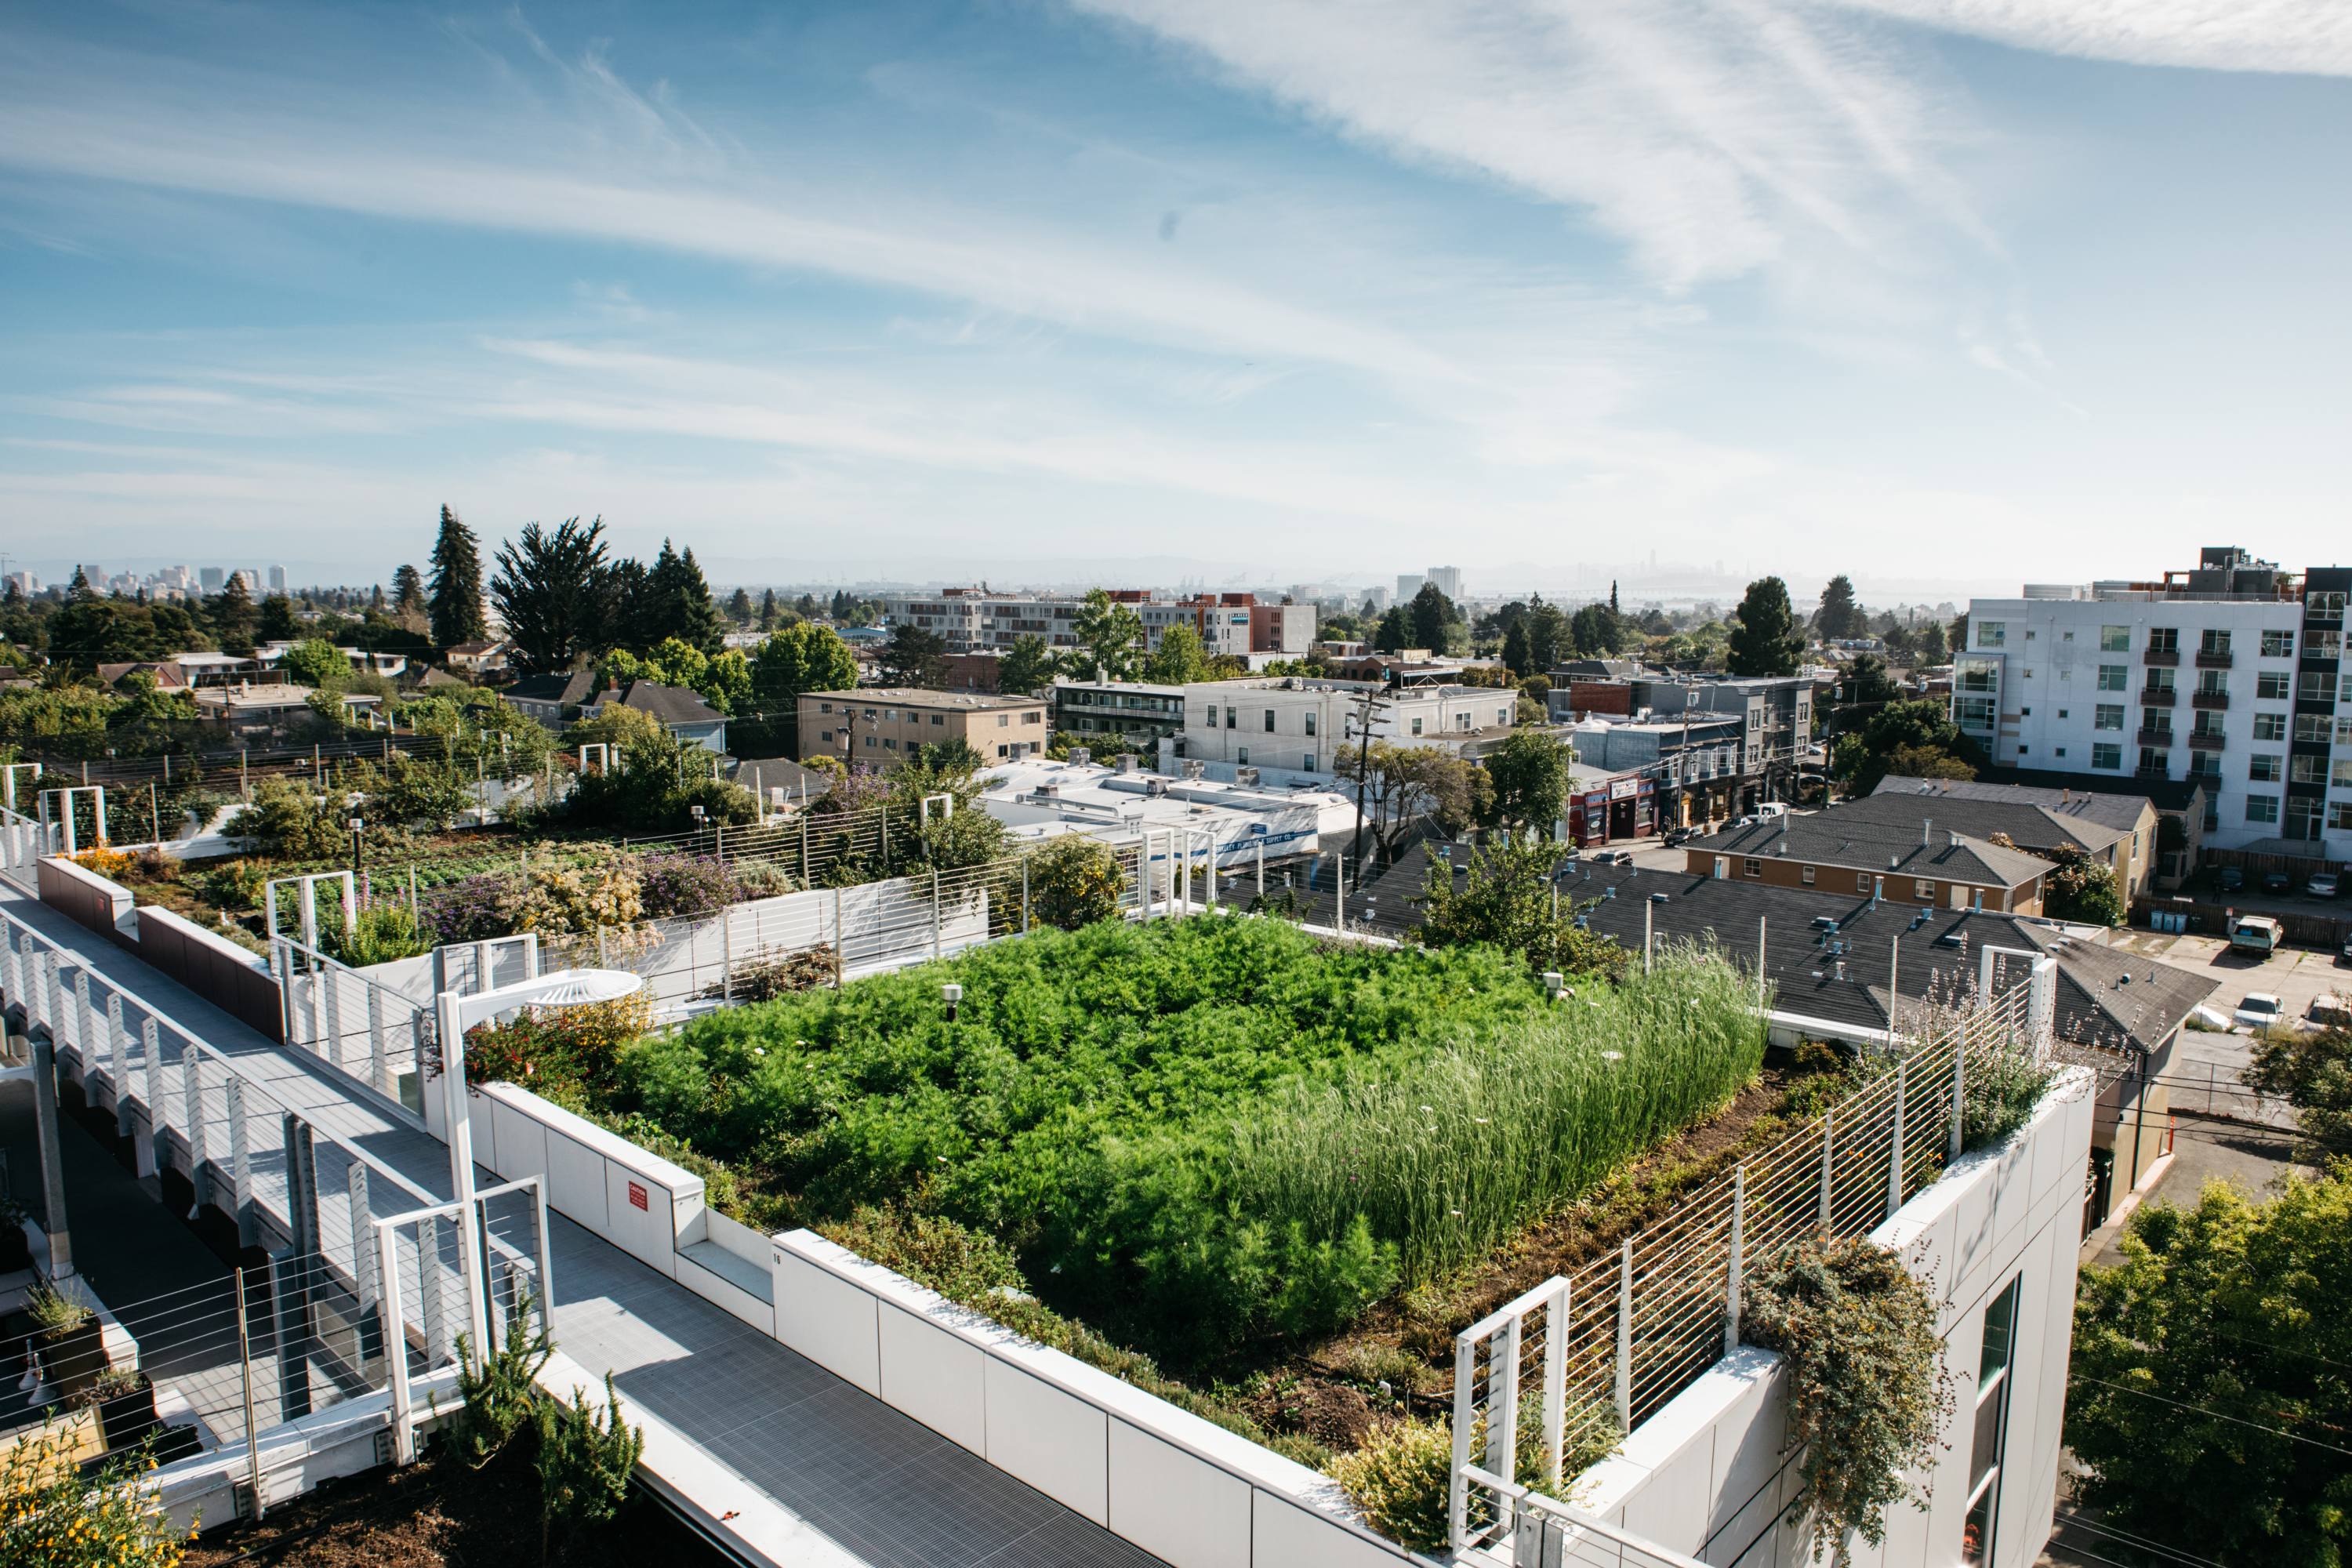 Bluma flower farm on the rooftop of the apartments at Dwight Way.